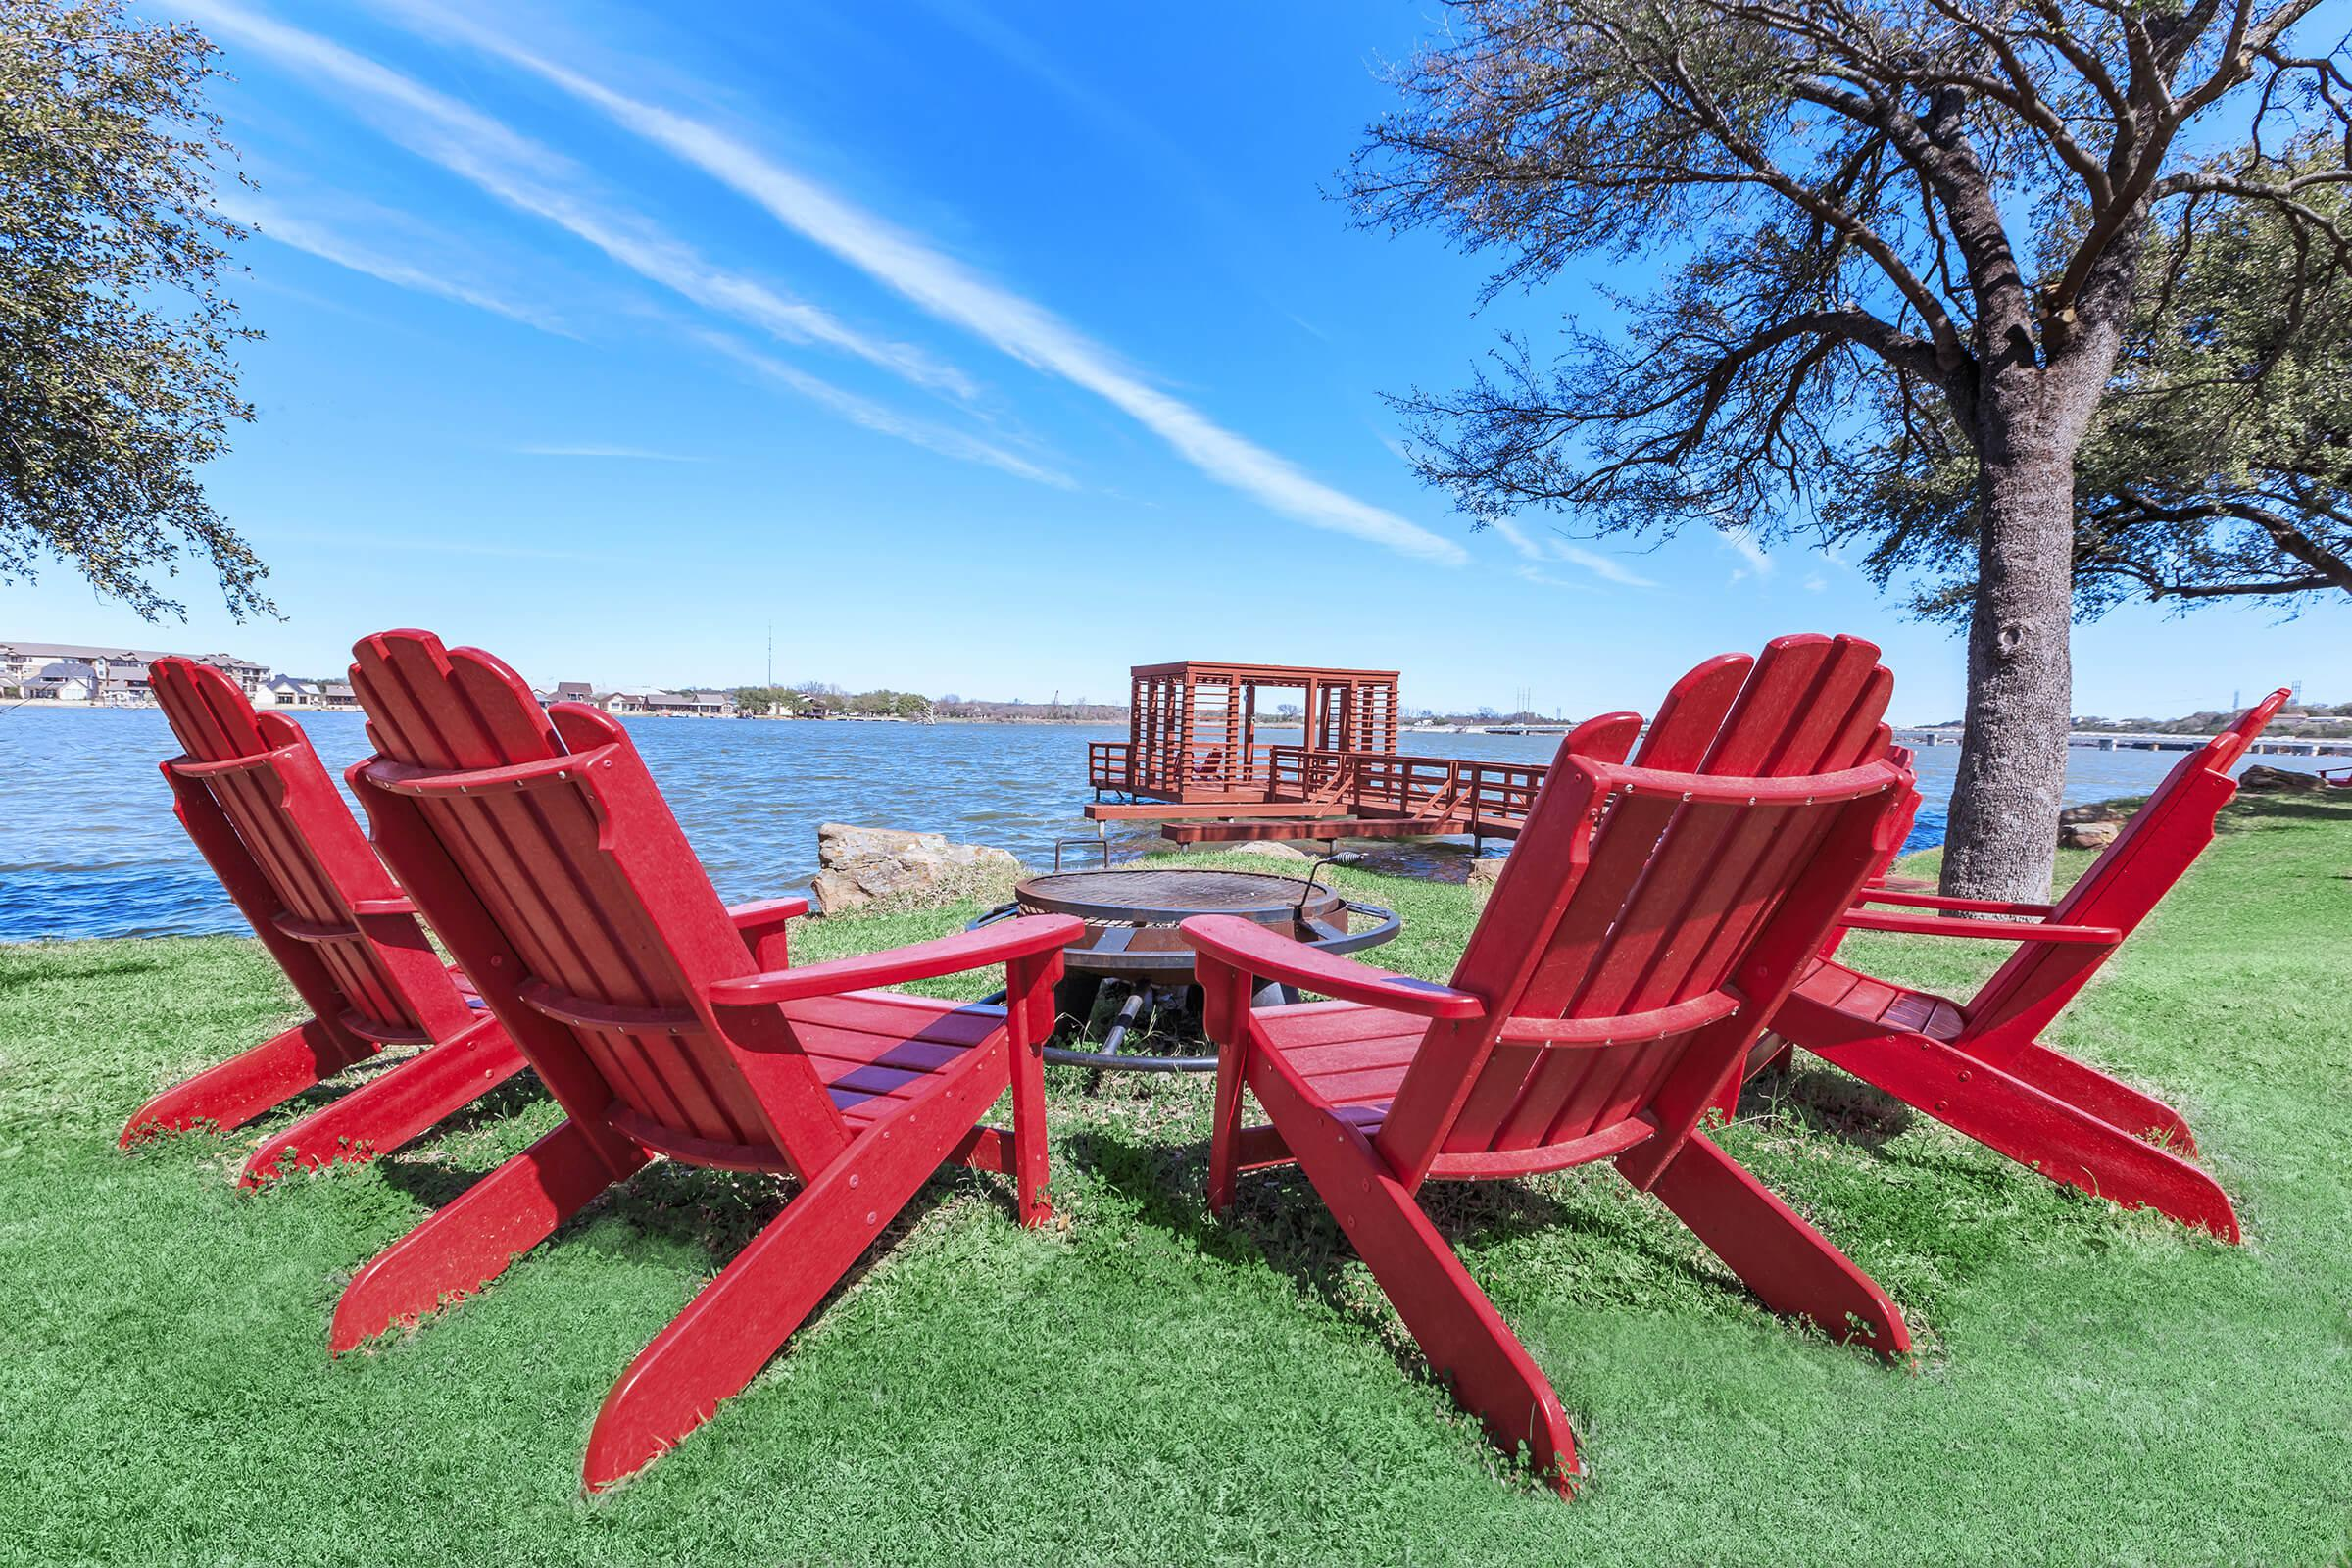 a group of lawn chairs sitting on top of a picnic table